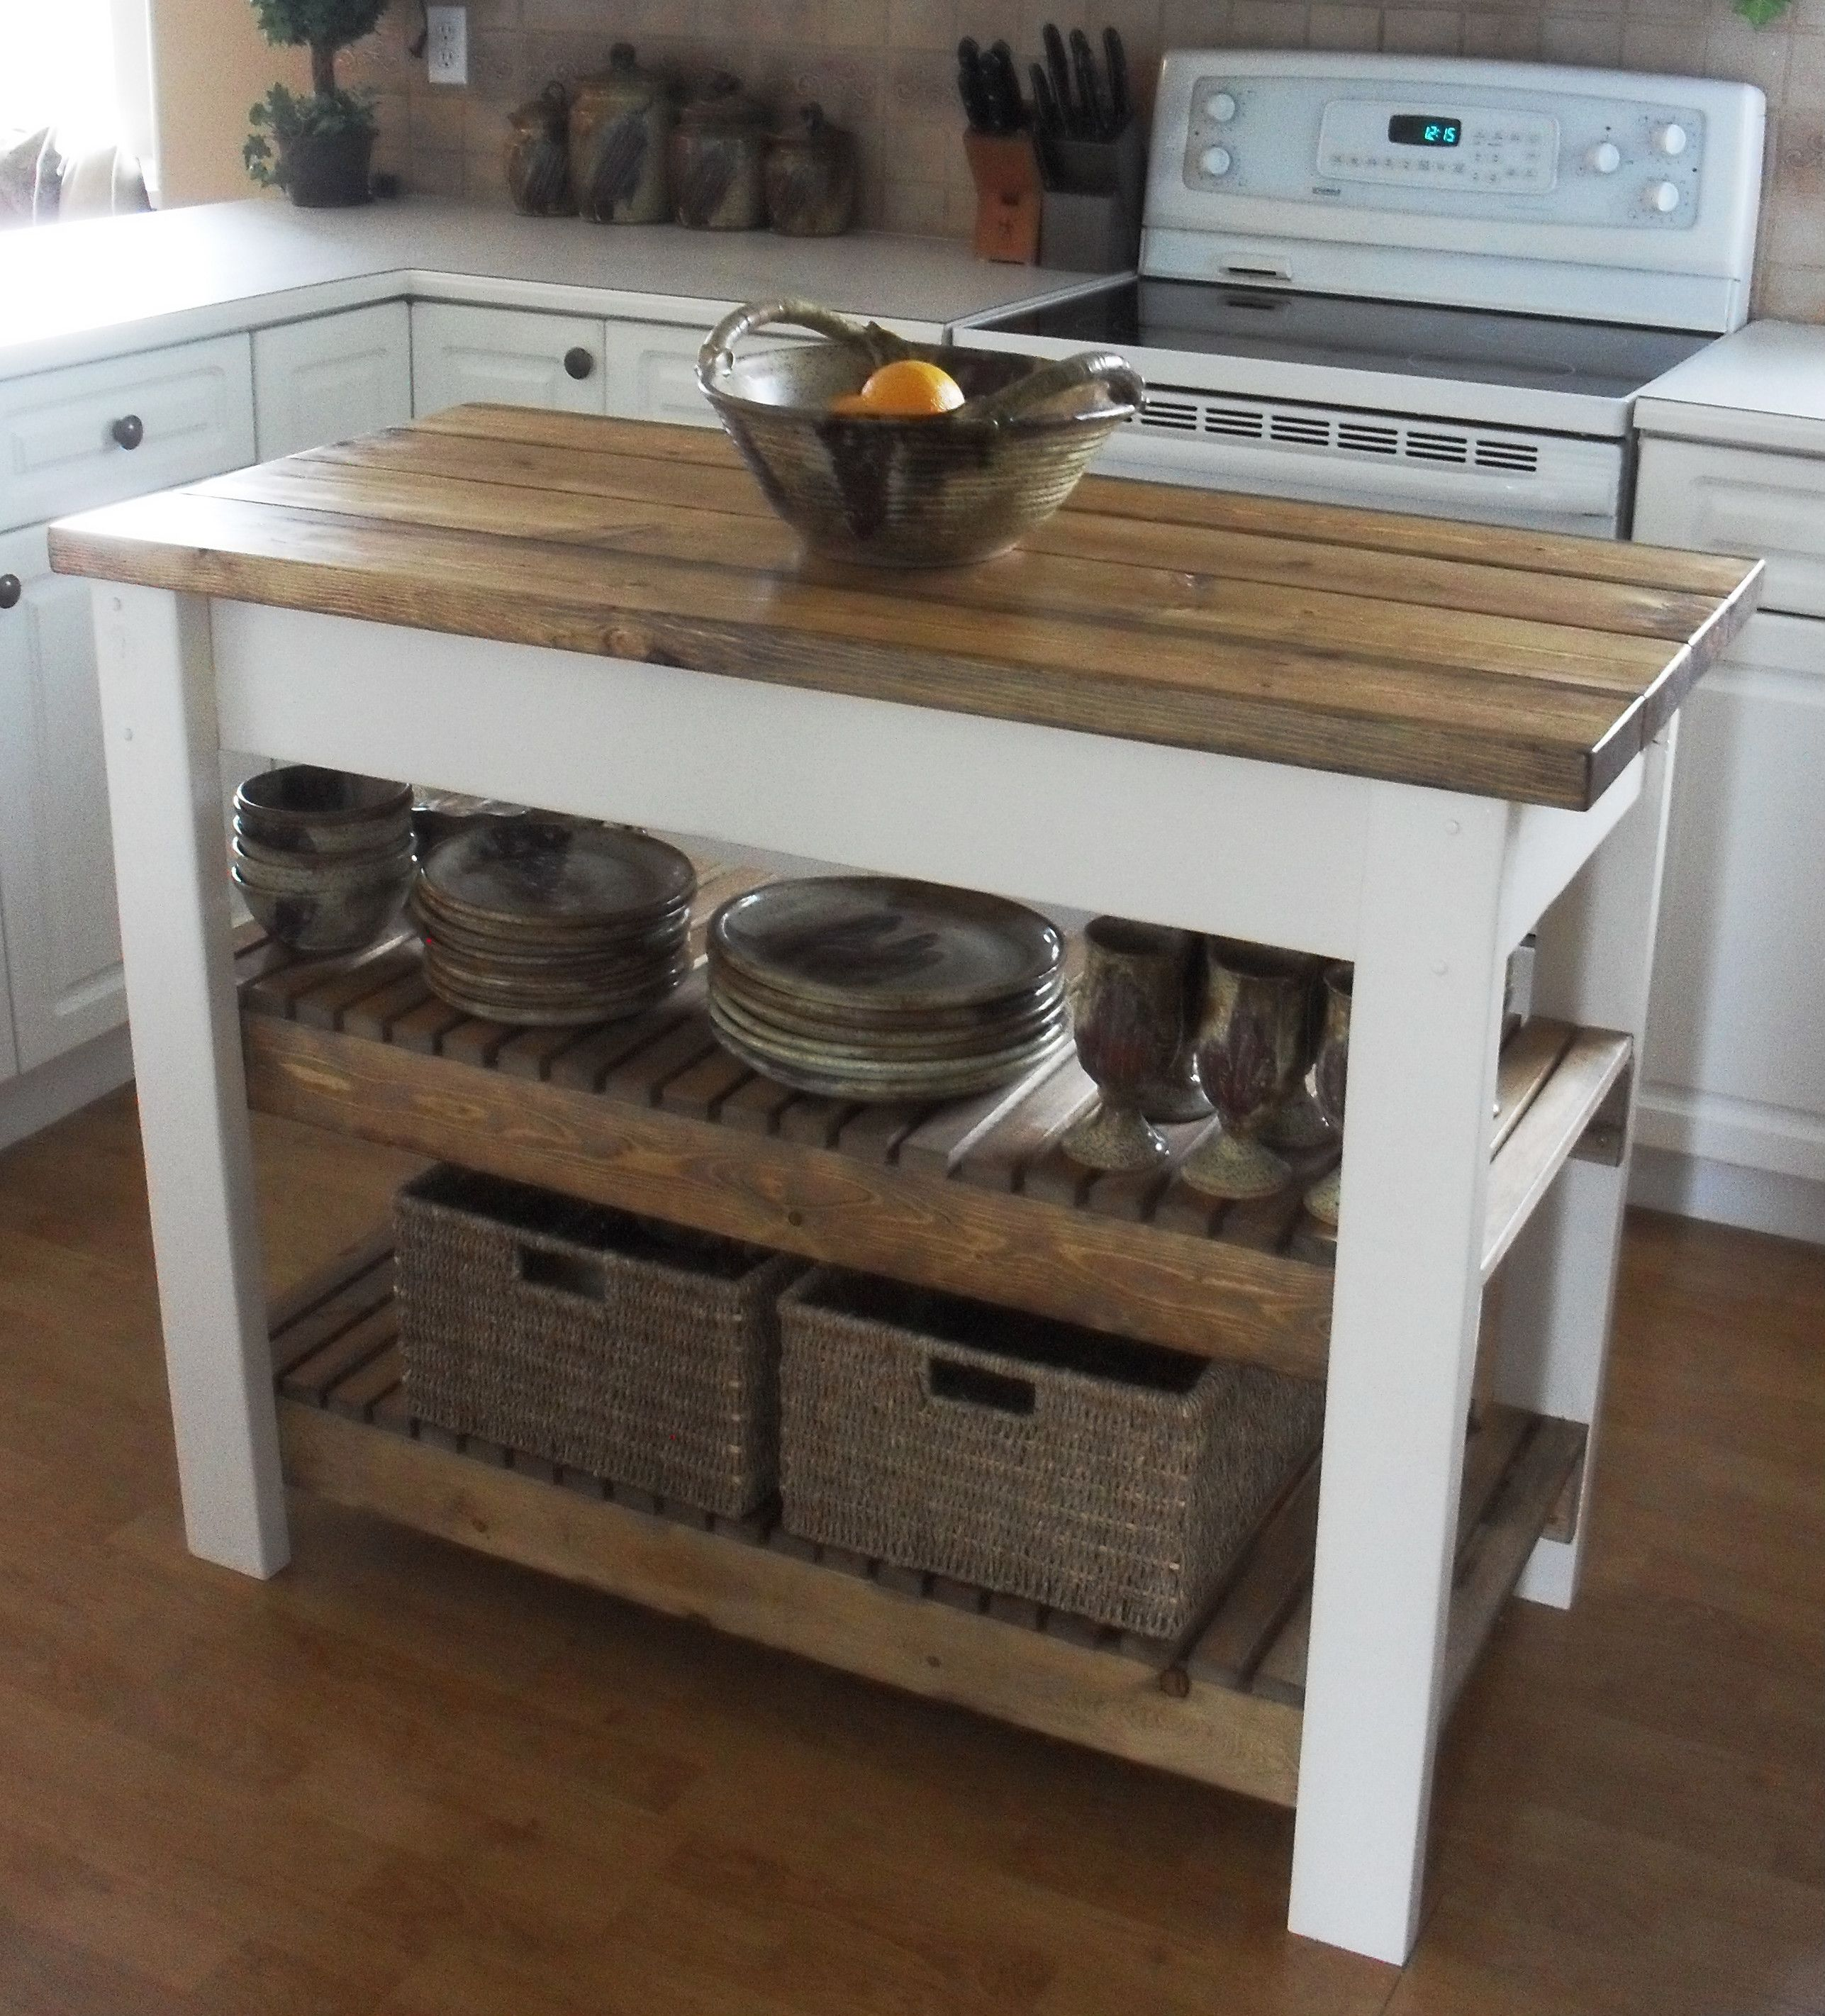 Diy kitchen island 47 in materials although id probably extend diy kitchen island 47 in materials although id probably extend it out a few inches to add seating baskets would be a perfect place to store things solutioingenieria